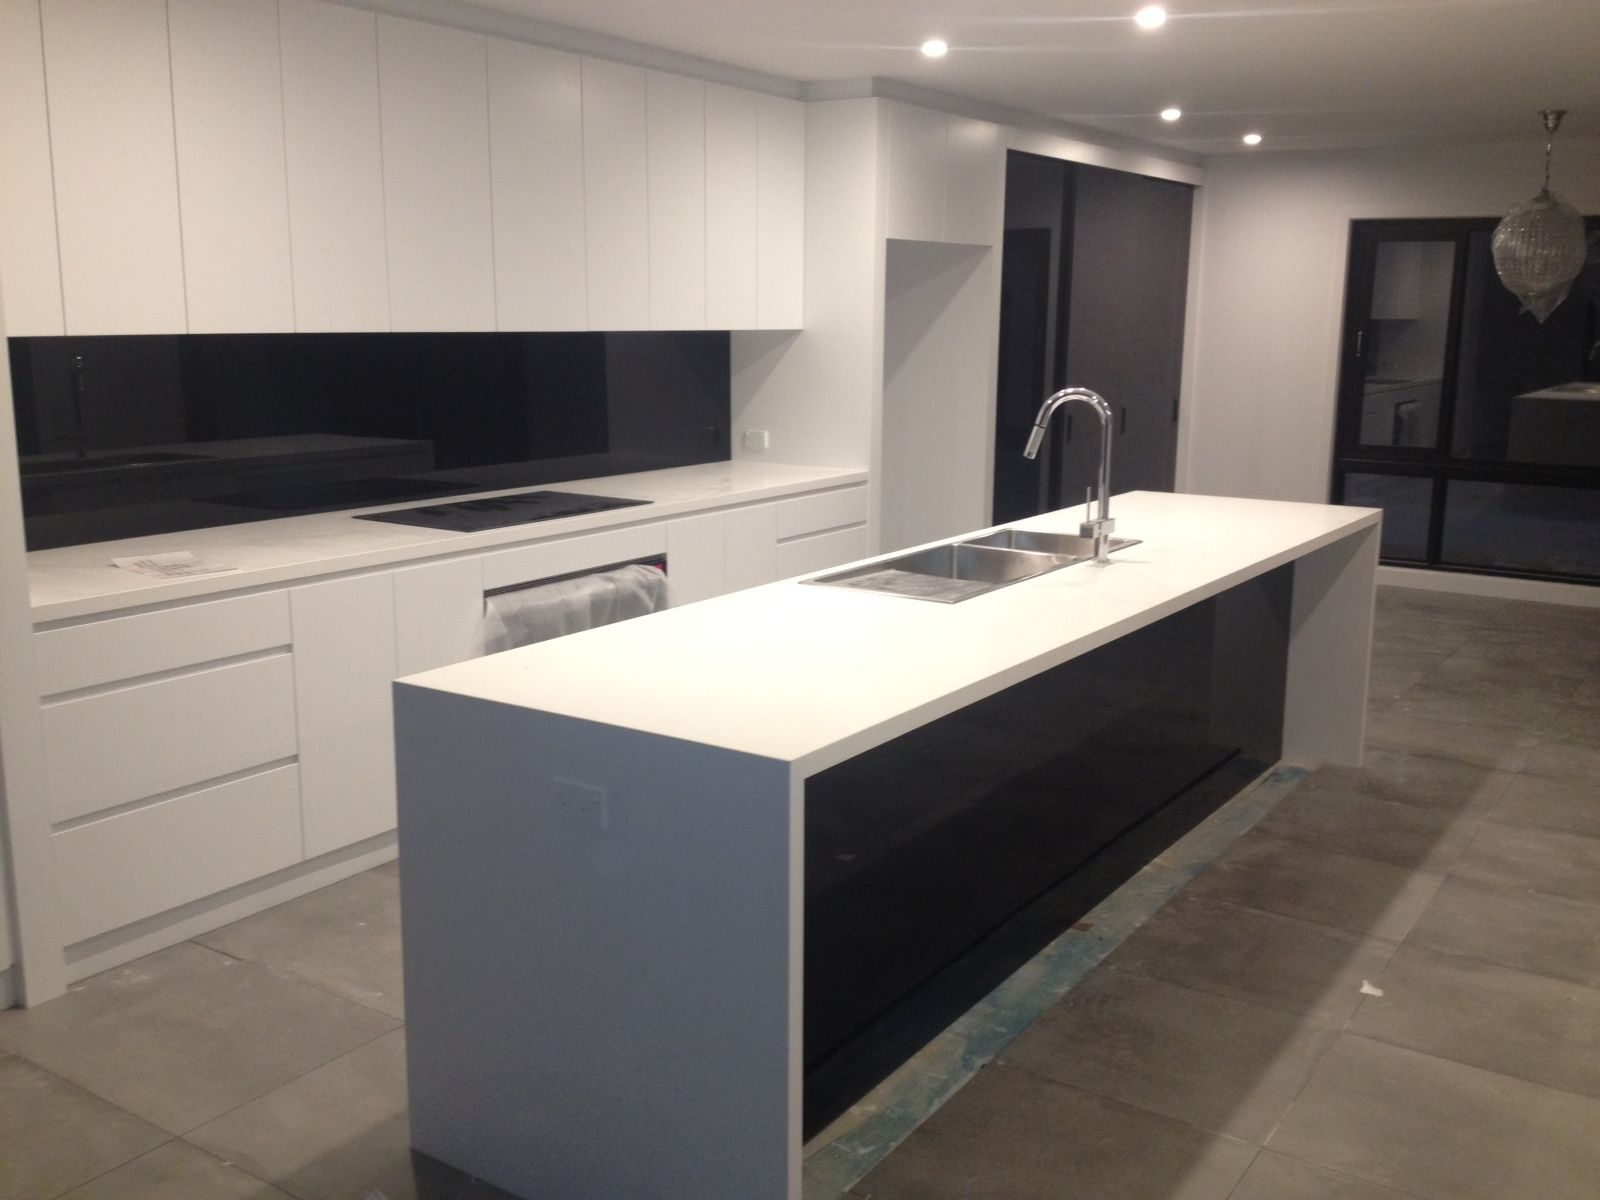 White Satin Polyurethane With 40mm Caesar Stone Pure White Bench Tops With Black Glass Feature